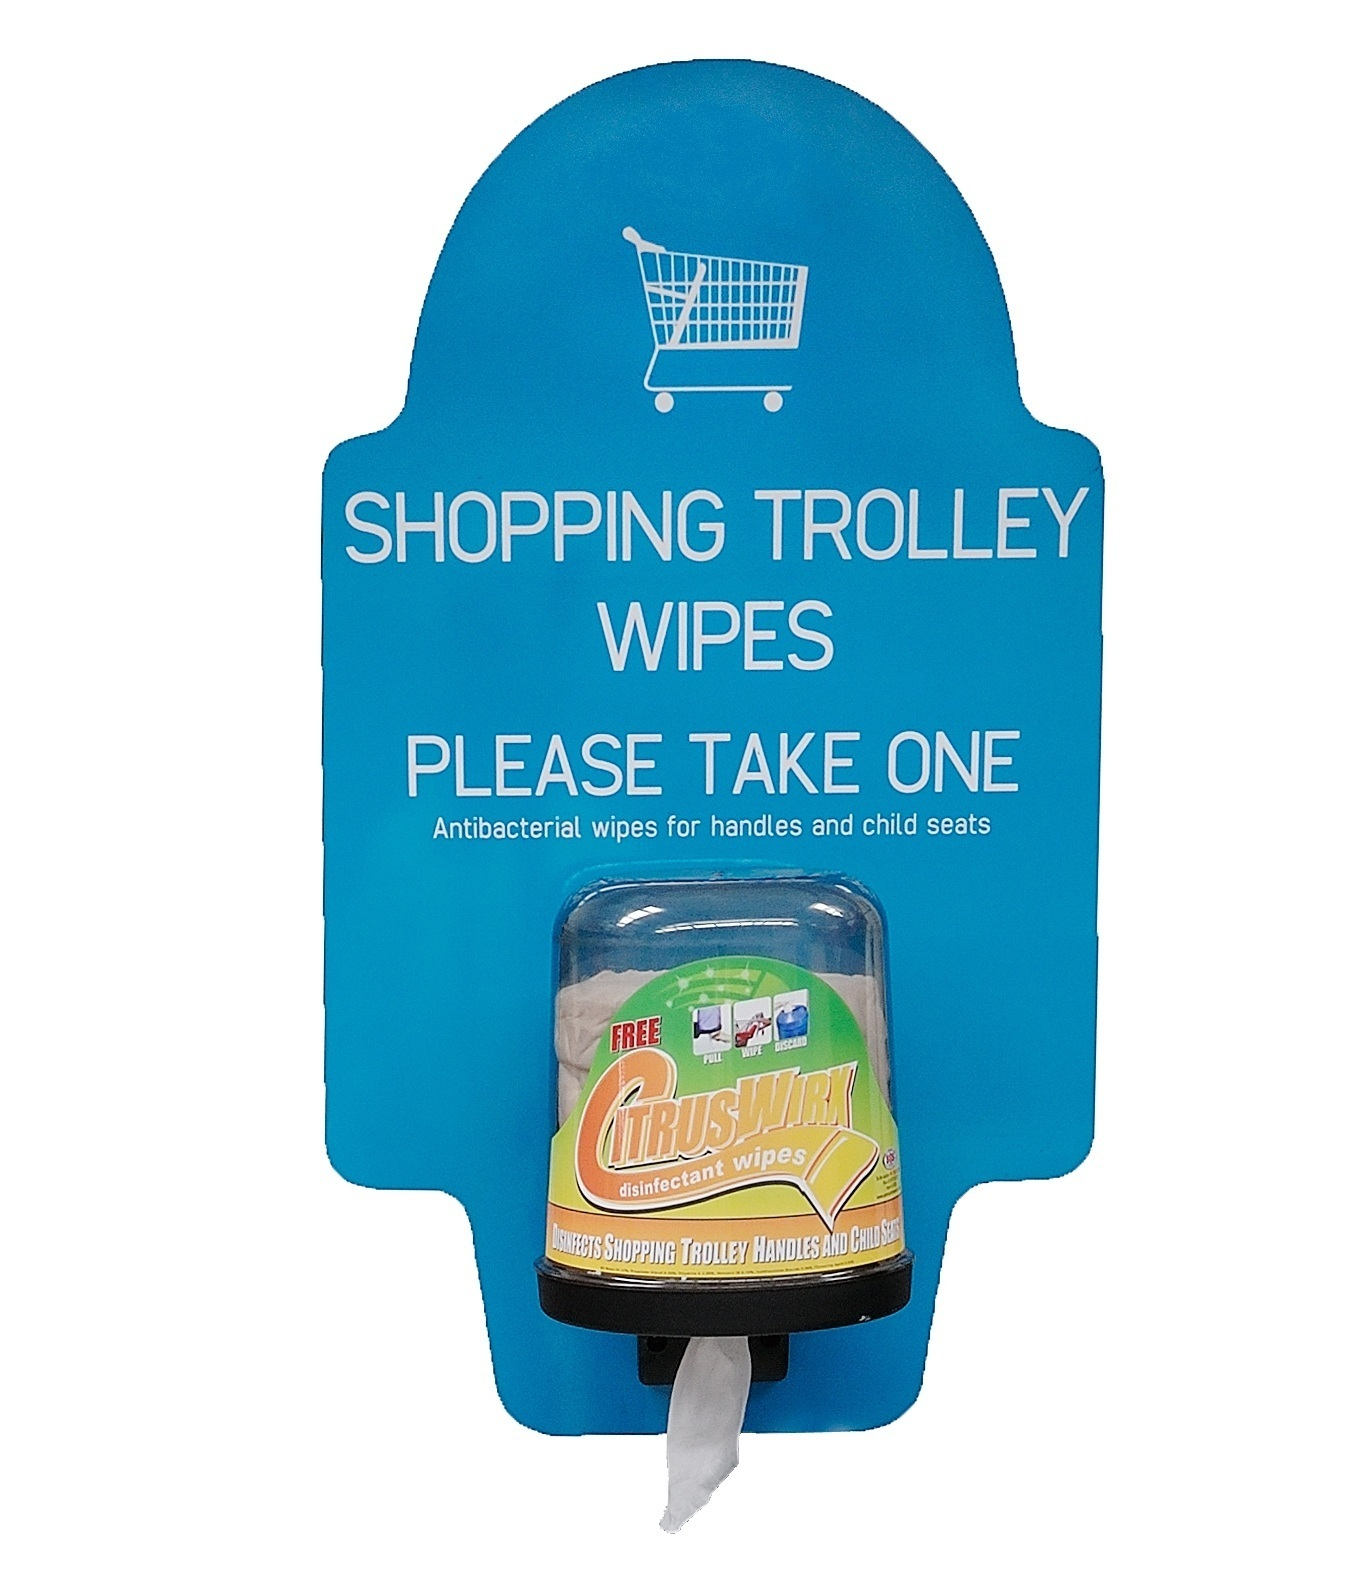 Our anti bacterial shopping trolley disinfectant wipes are non alcohol based wipes that are 100% biodegradeable. These trolley disinfectant wipes are suitable for supermarkets, gyms, gaming venues & general retail stores. Enquire now!